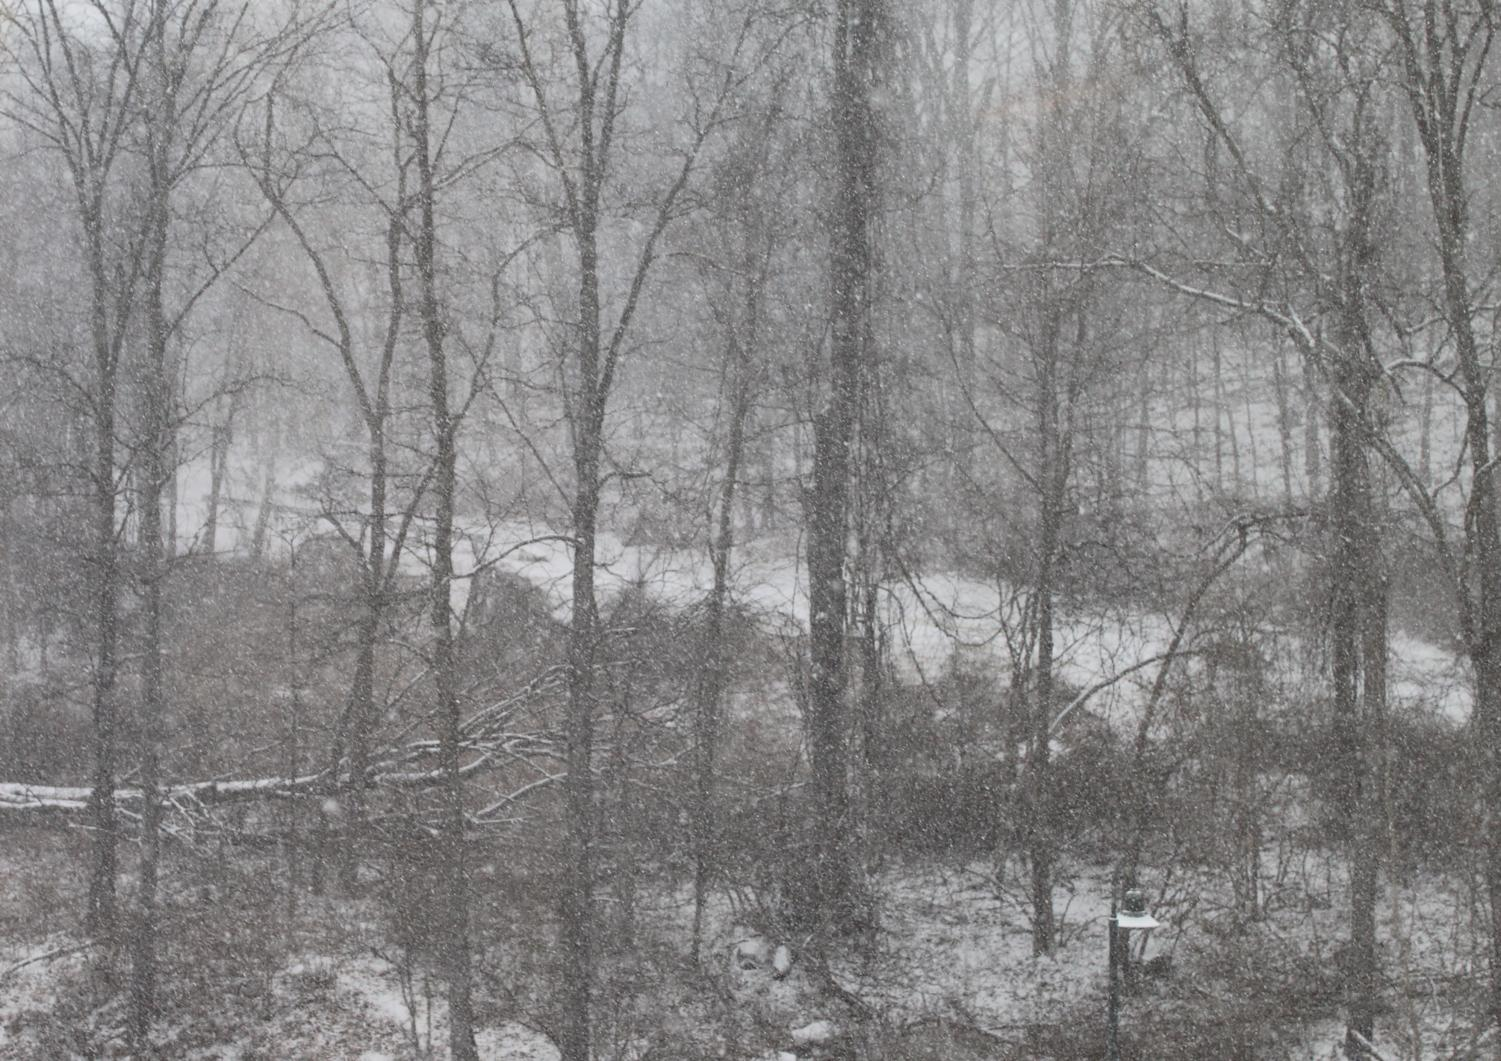 During one of the brief snowstorms this season, the snow covers the trees and road.